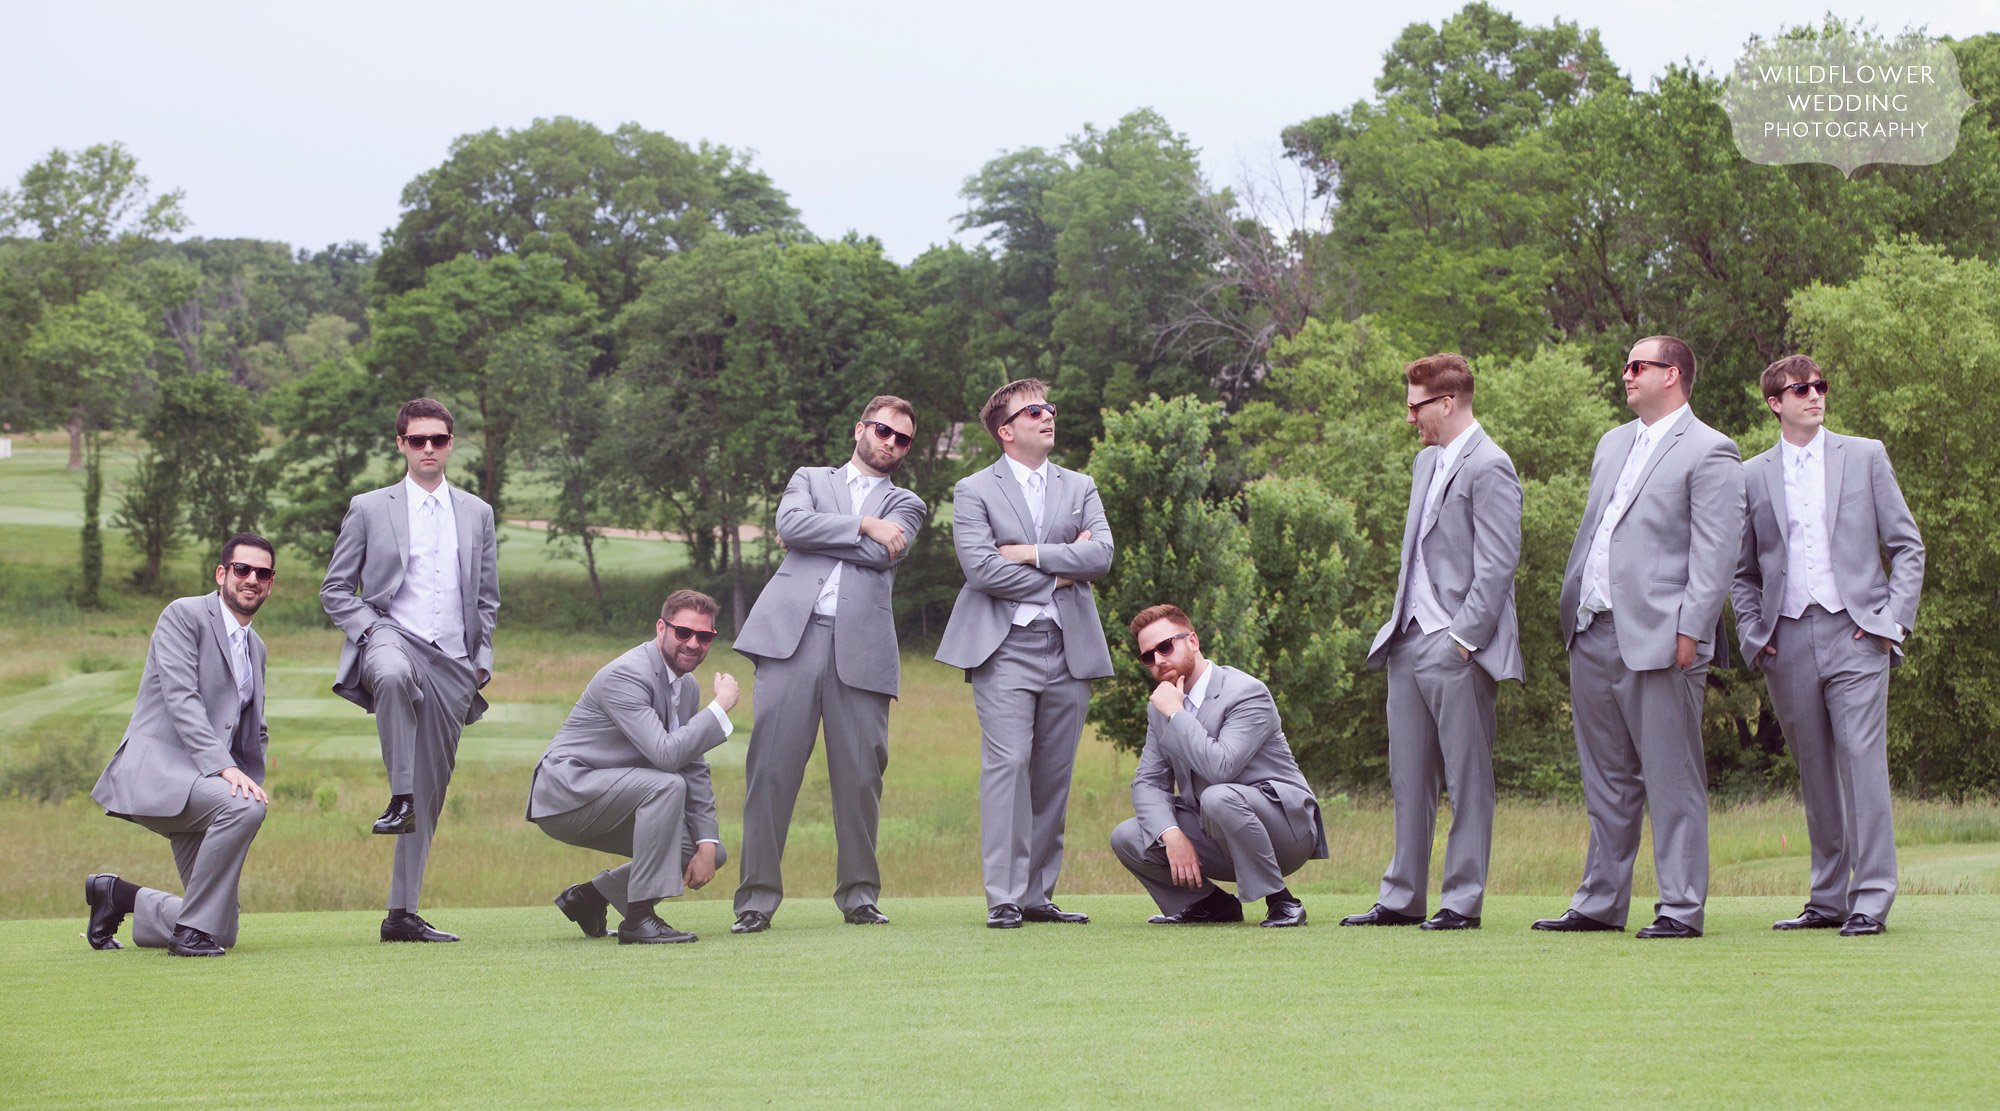 Funny wedding photo of eight groomsmen at the Old Hawthorne Club in Columbia, MO.